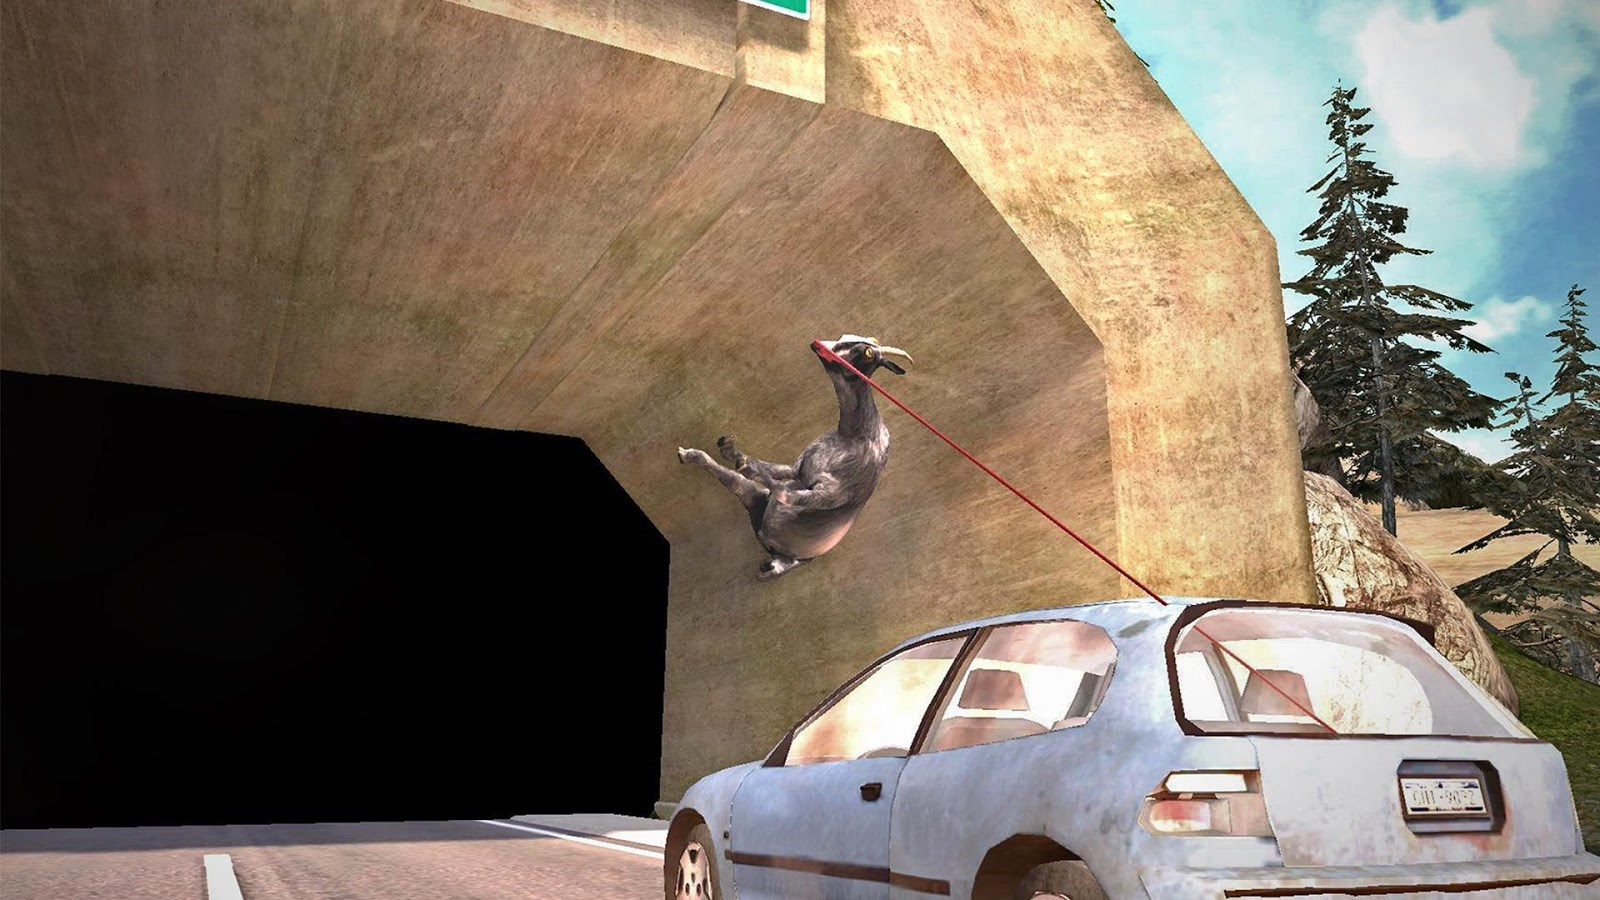 Goat Simulator - Imagem 1 do software